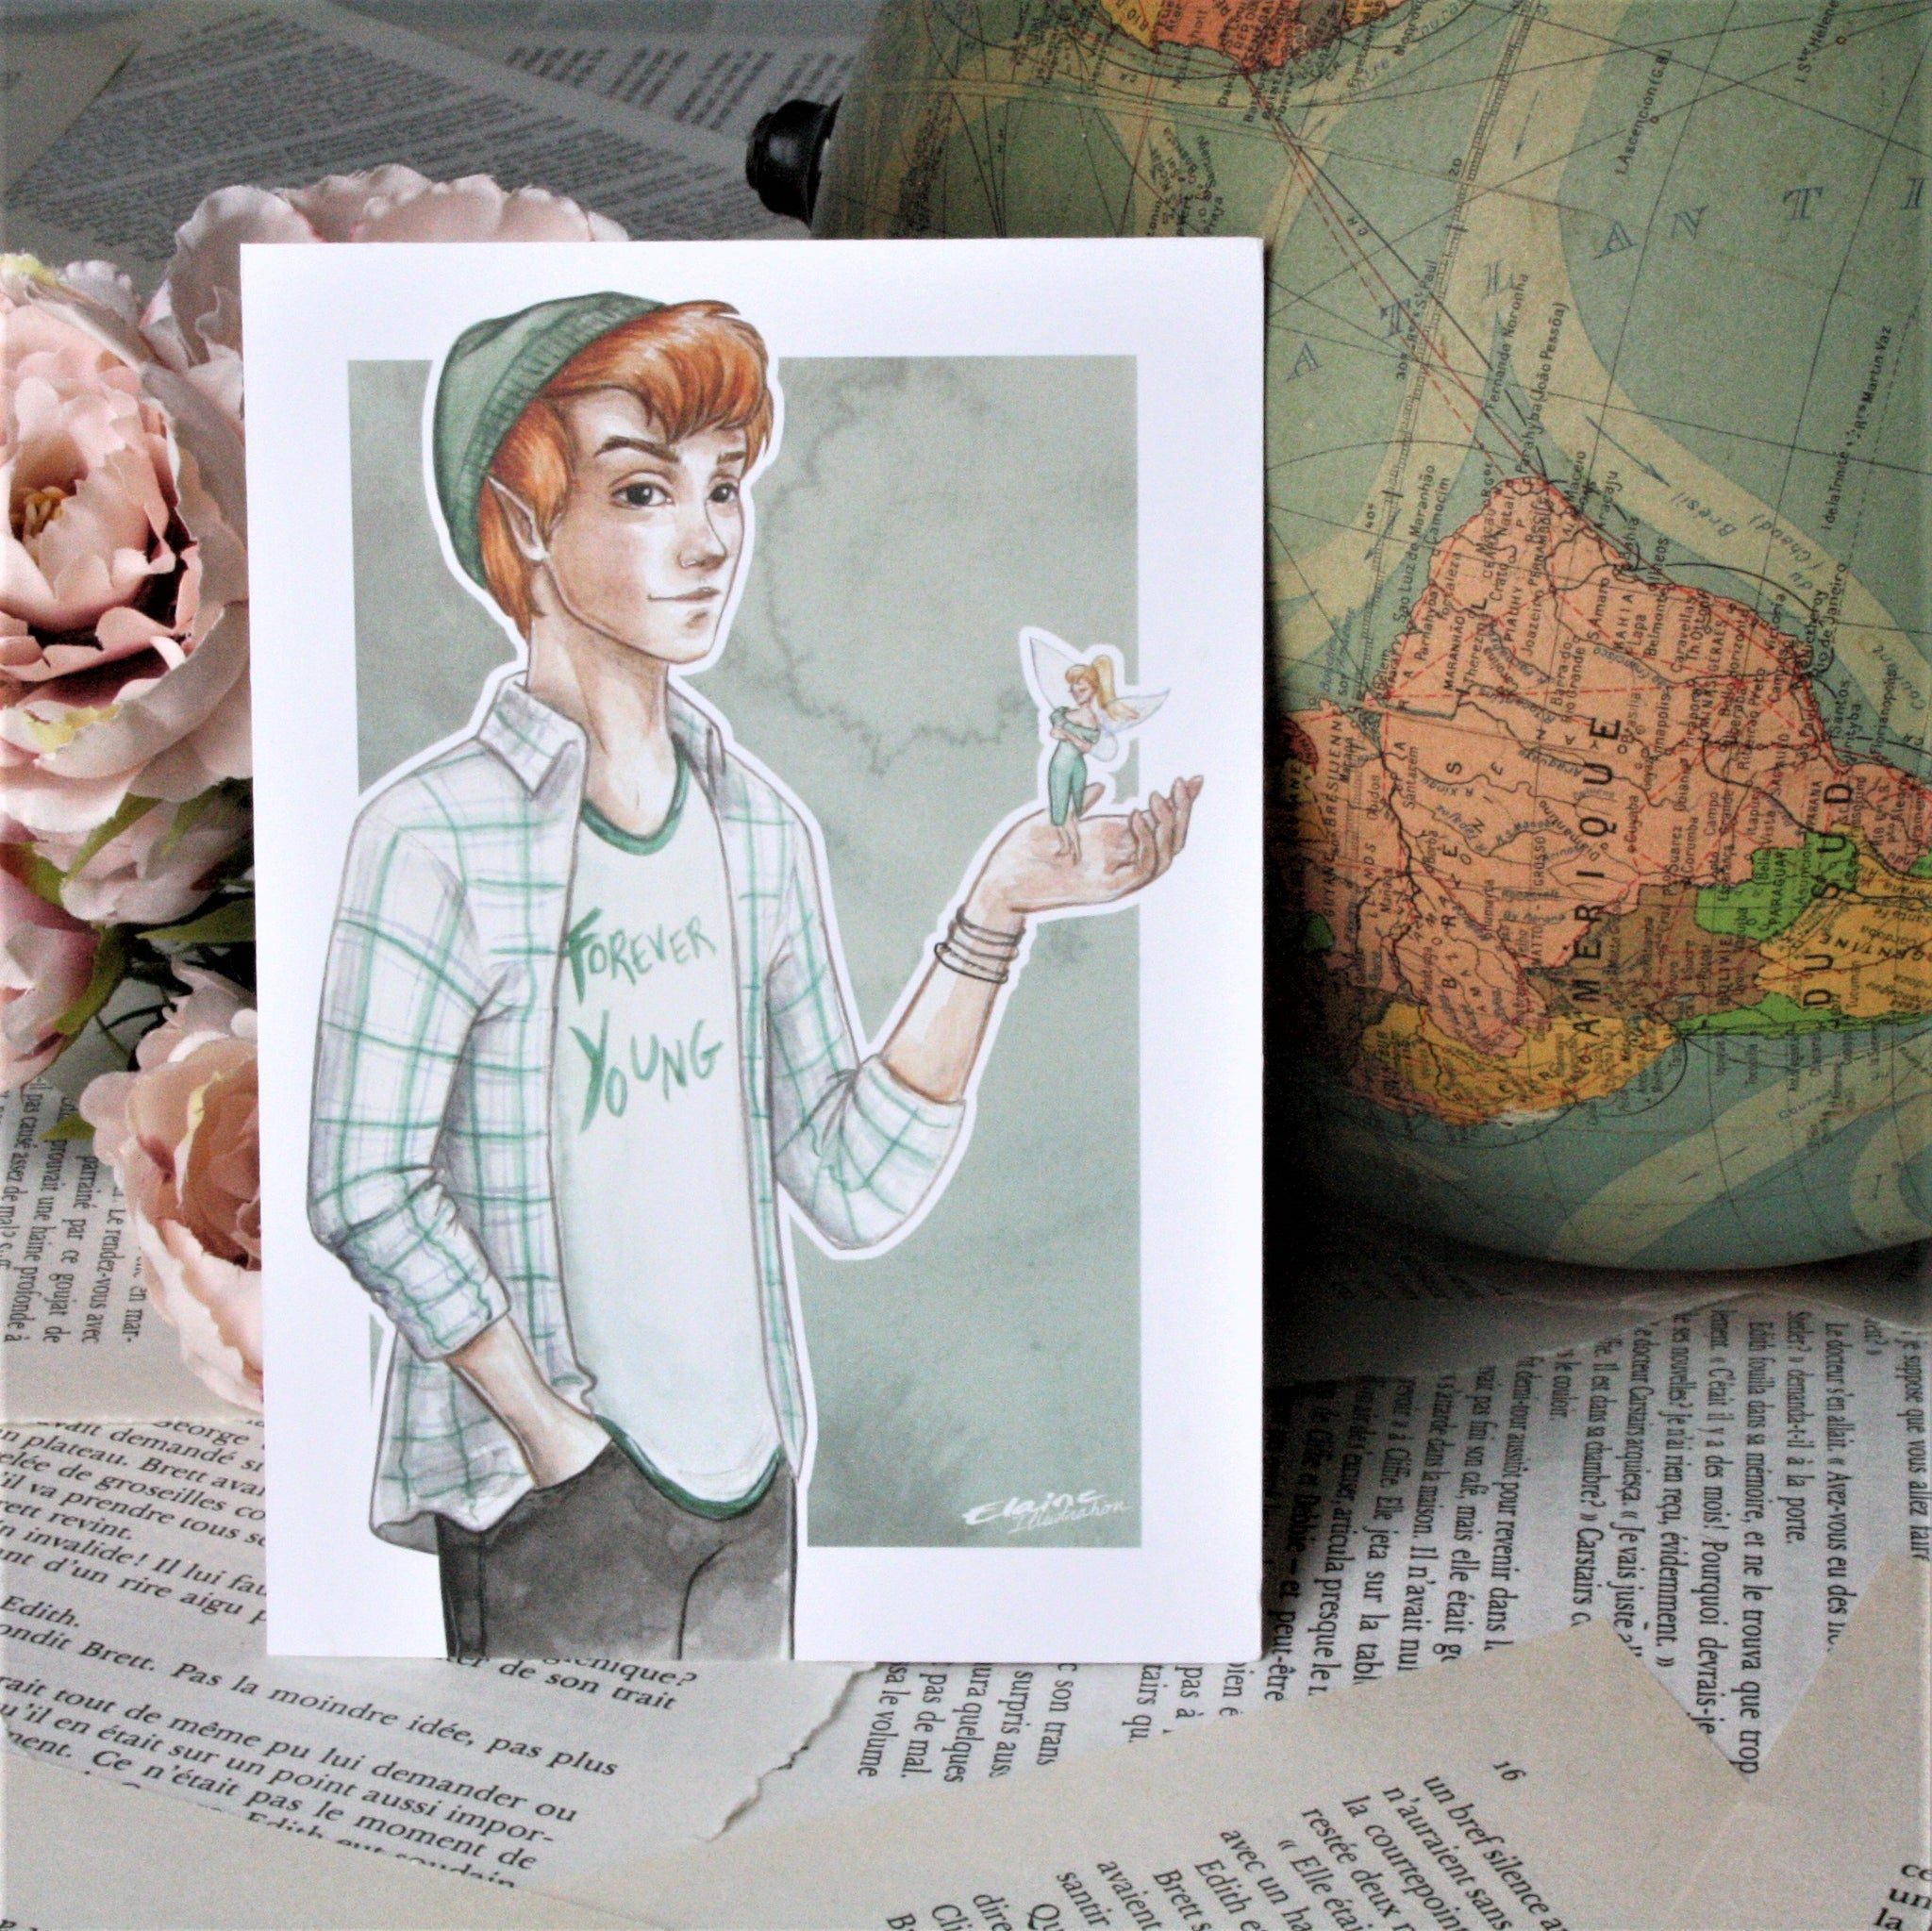 Illustration Peter pan format A6 - 10,5x14,8 cm